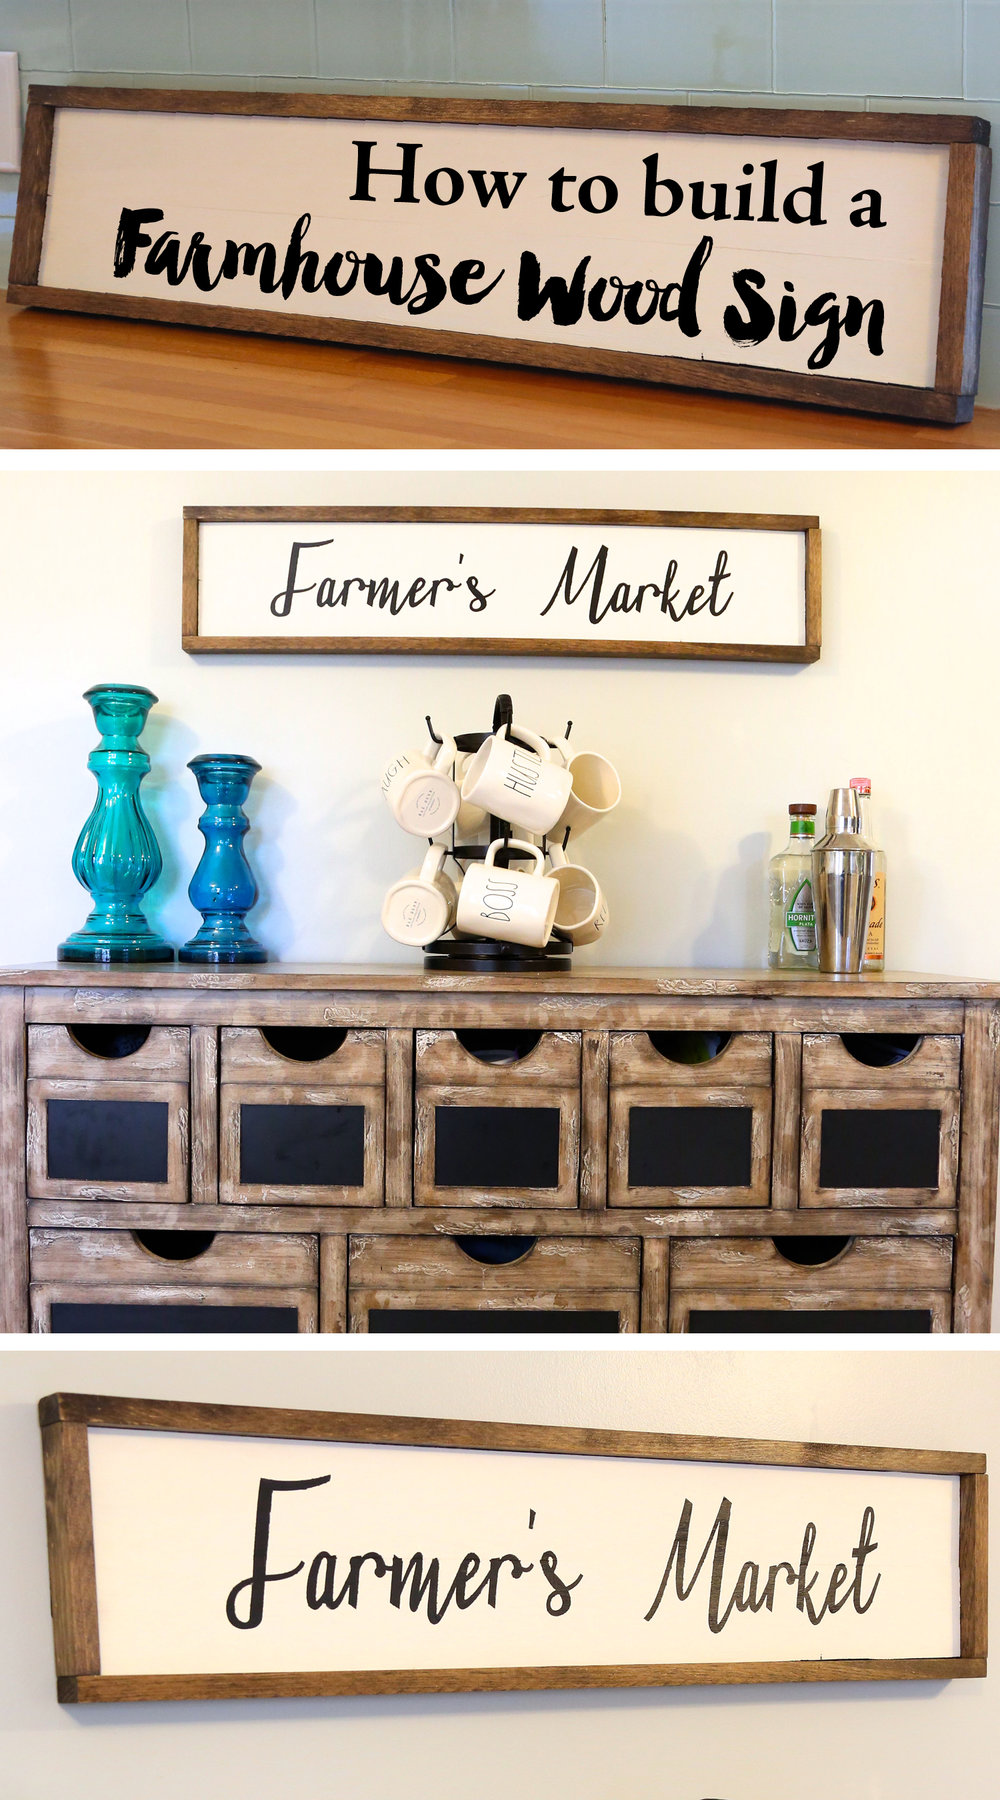 How to build a farmhouse wood sign